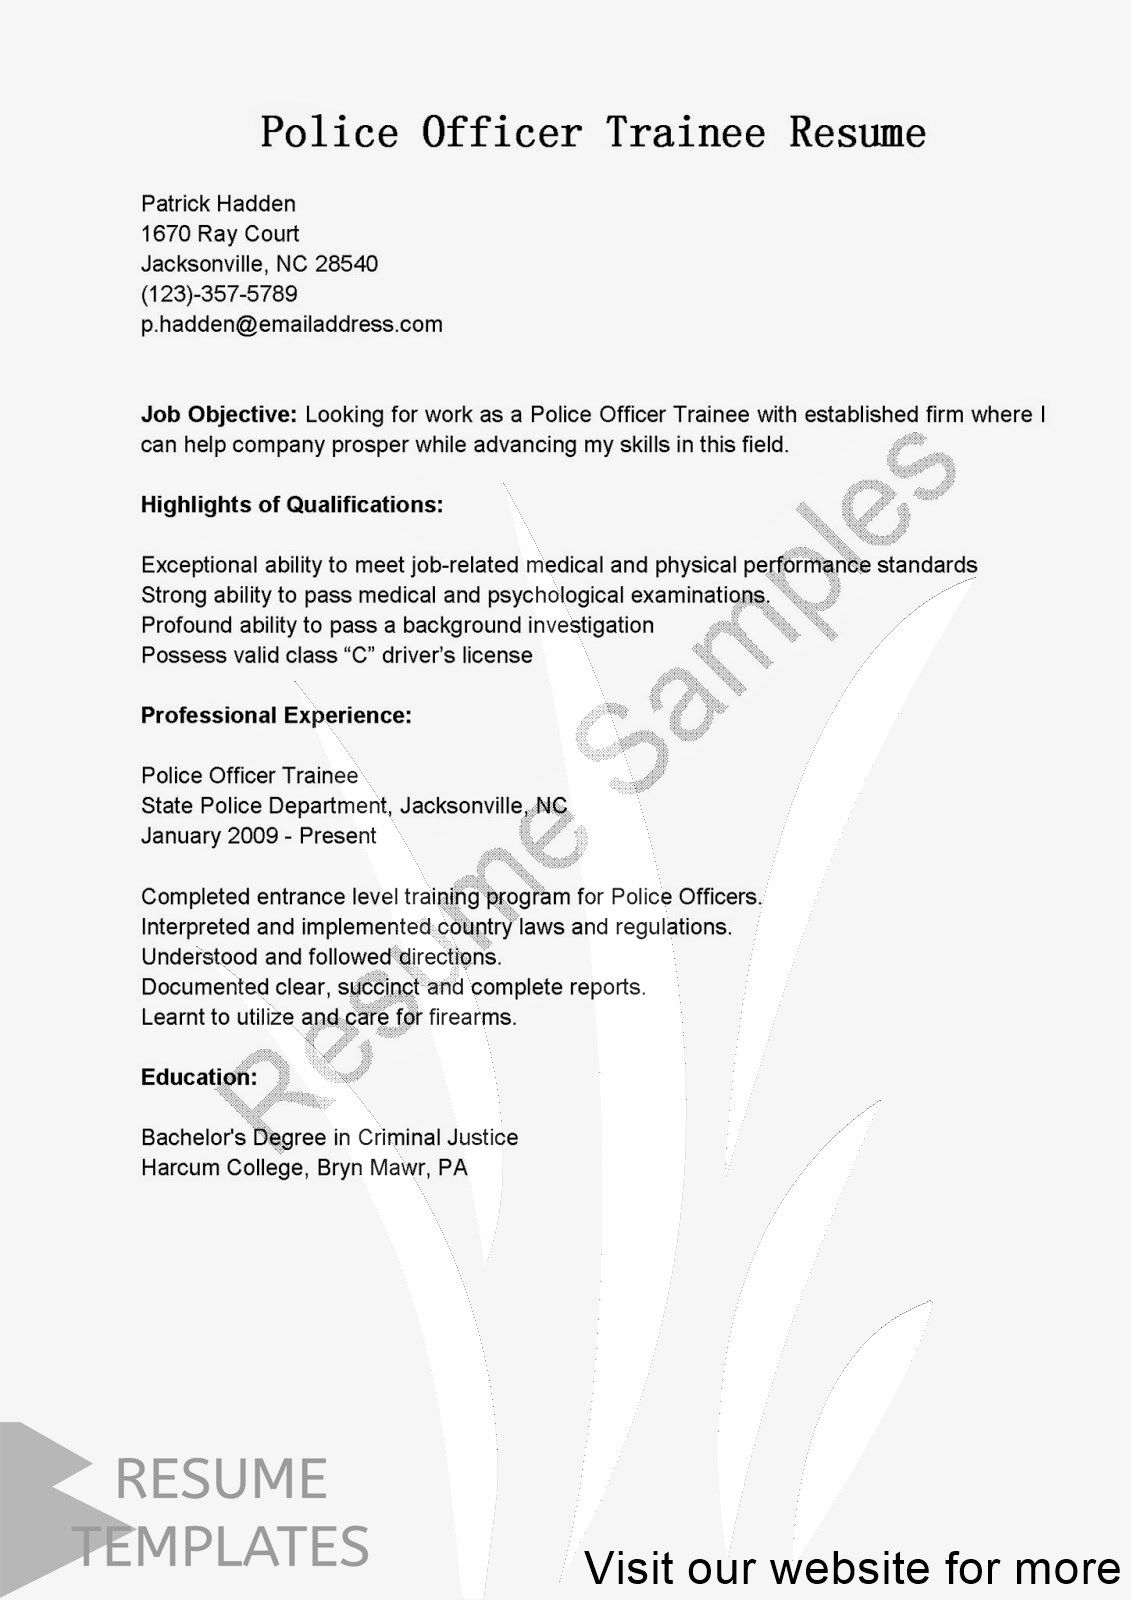 Resume Template Electrician Professional In 2020 Resume Template